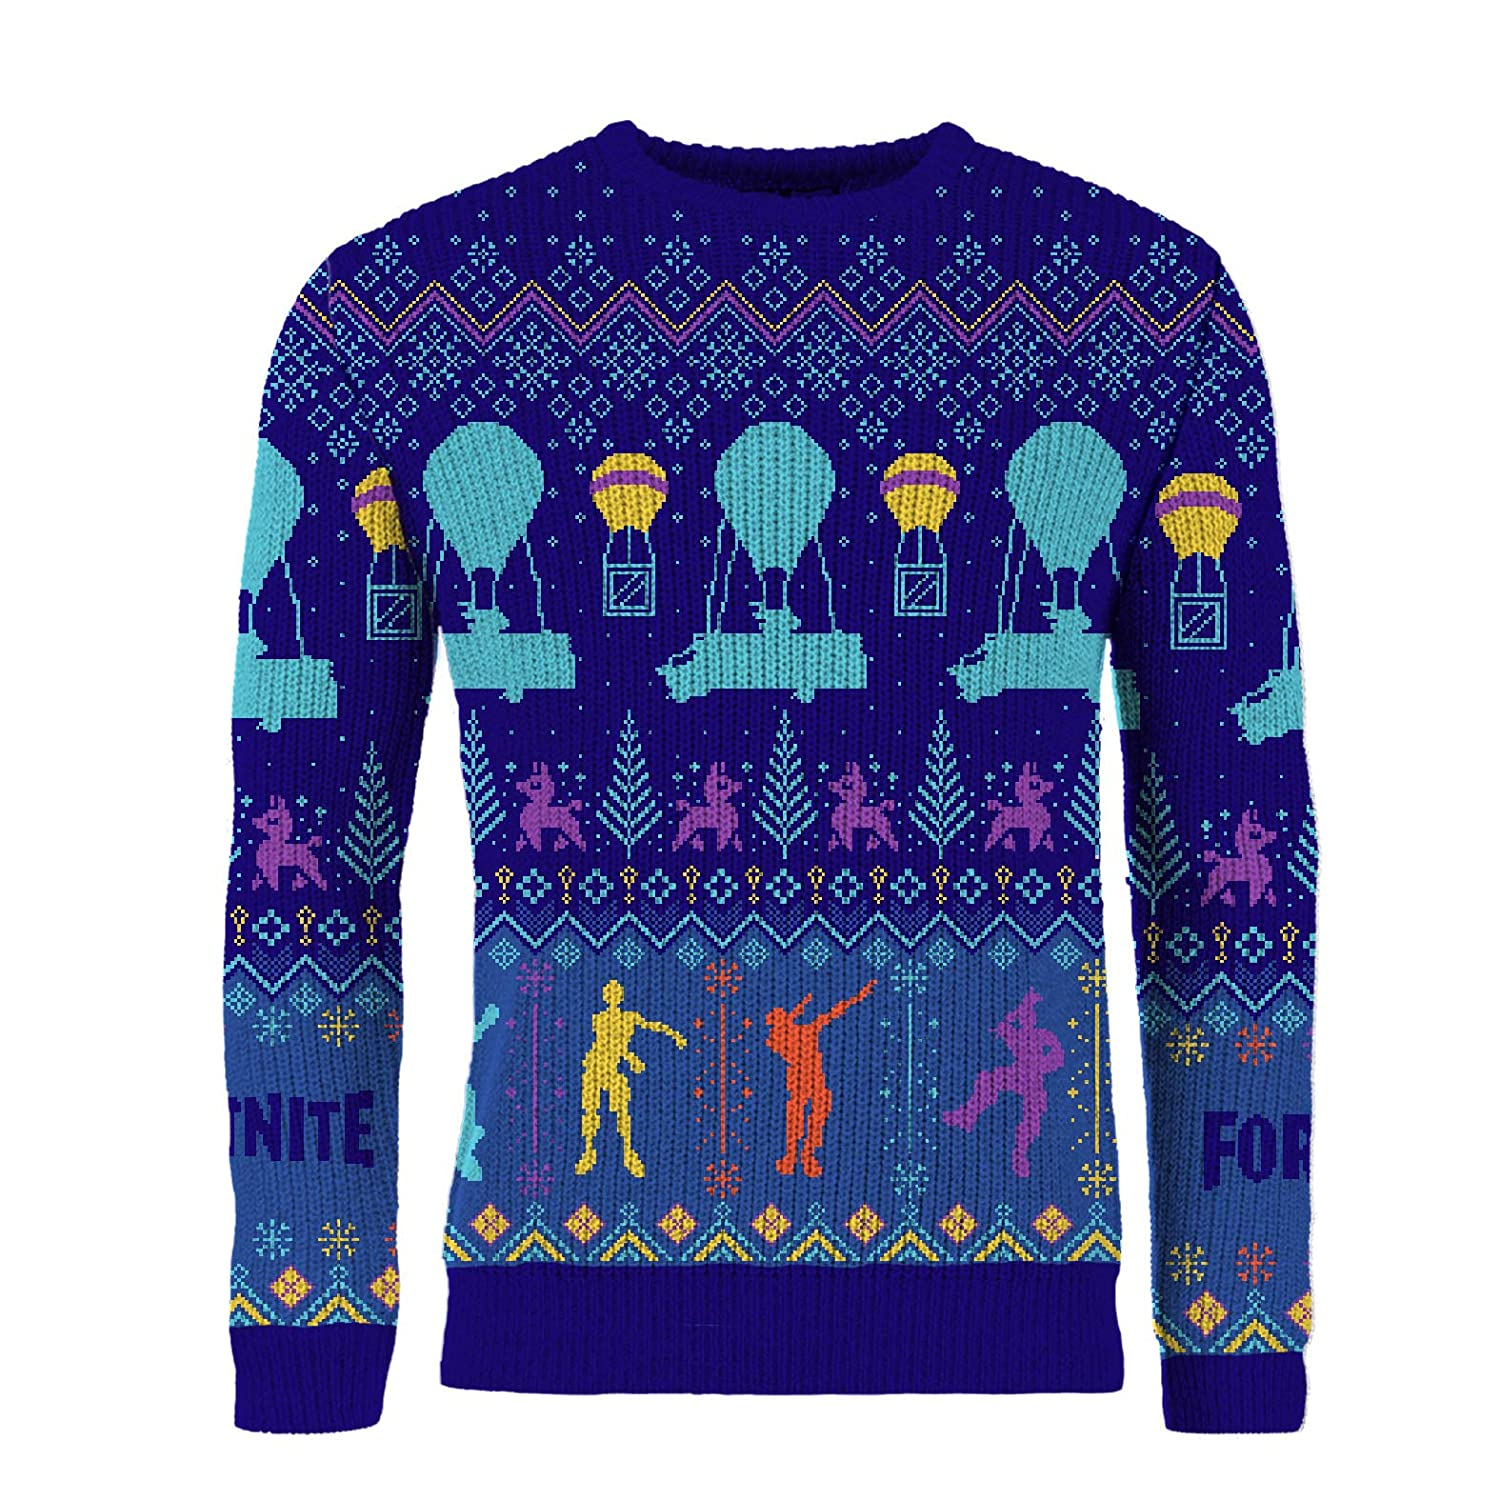 Fortnite Official Merchandise Jumper Christmas Jumpers for Boys and Men Xmas Floss Like a Boss Boys Fortnight Gaming Geek Gamer Clothing